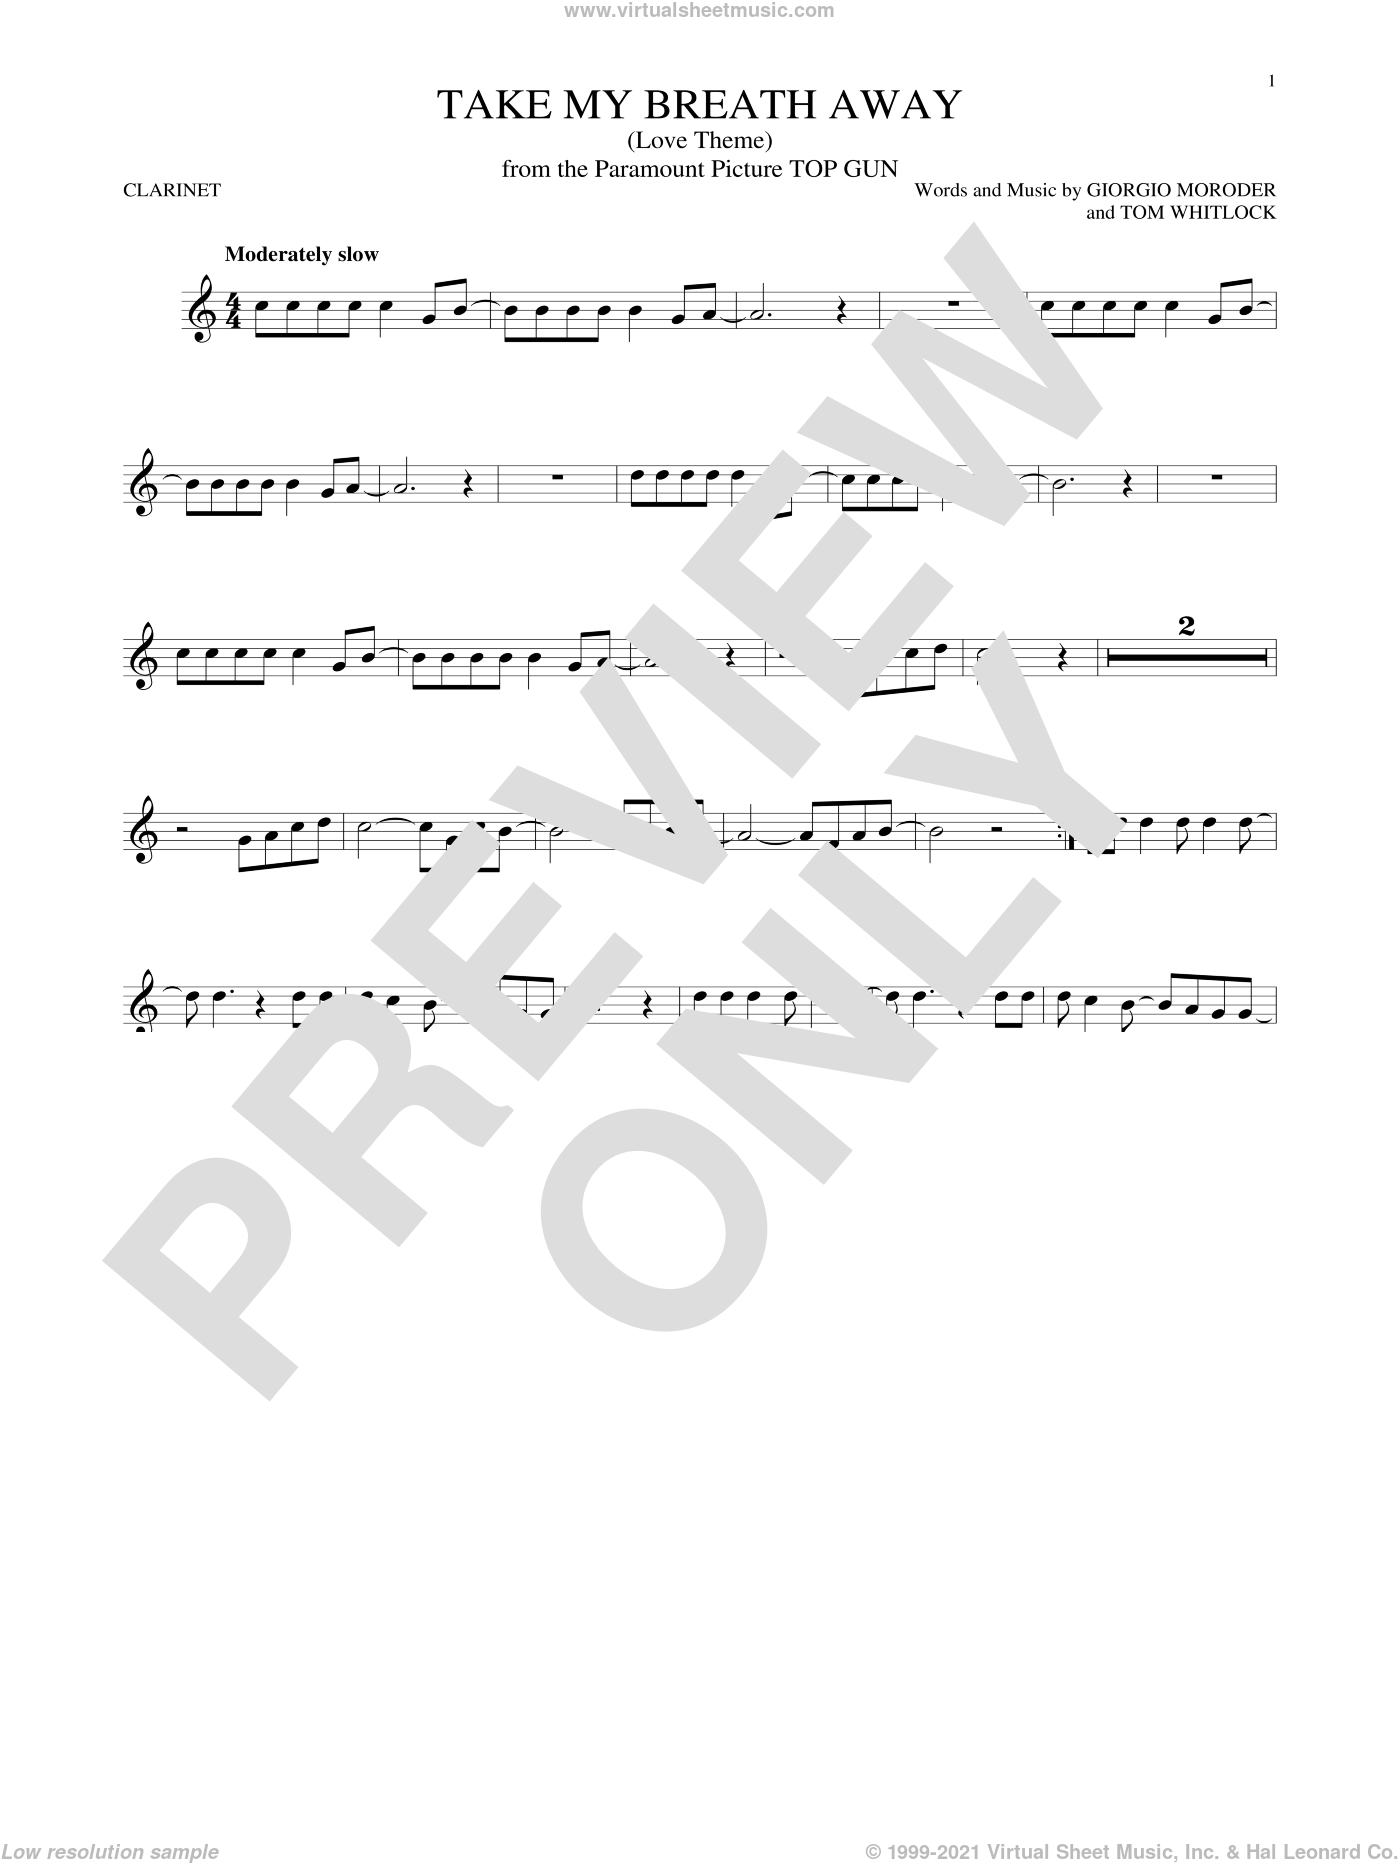 Take My Breath Away (Love Theme) sheet music for clarinet solo by Giorgio Moroder, Irving Berlin, Jessica Simpson and Tom Whitlock, intermediate skill level